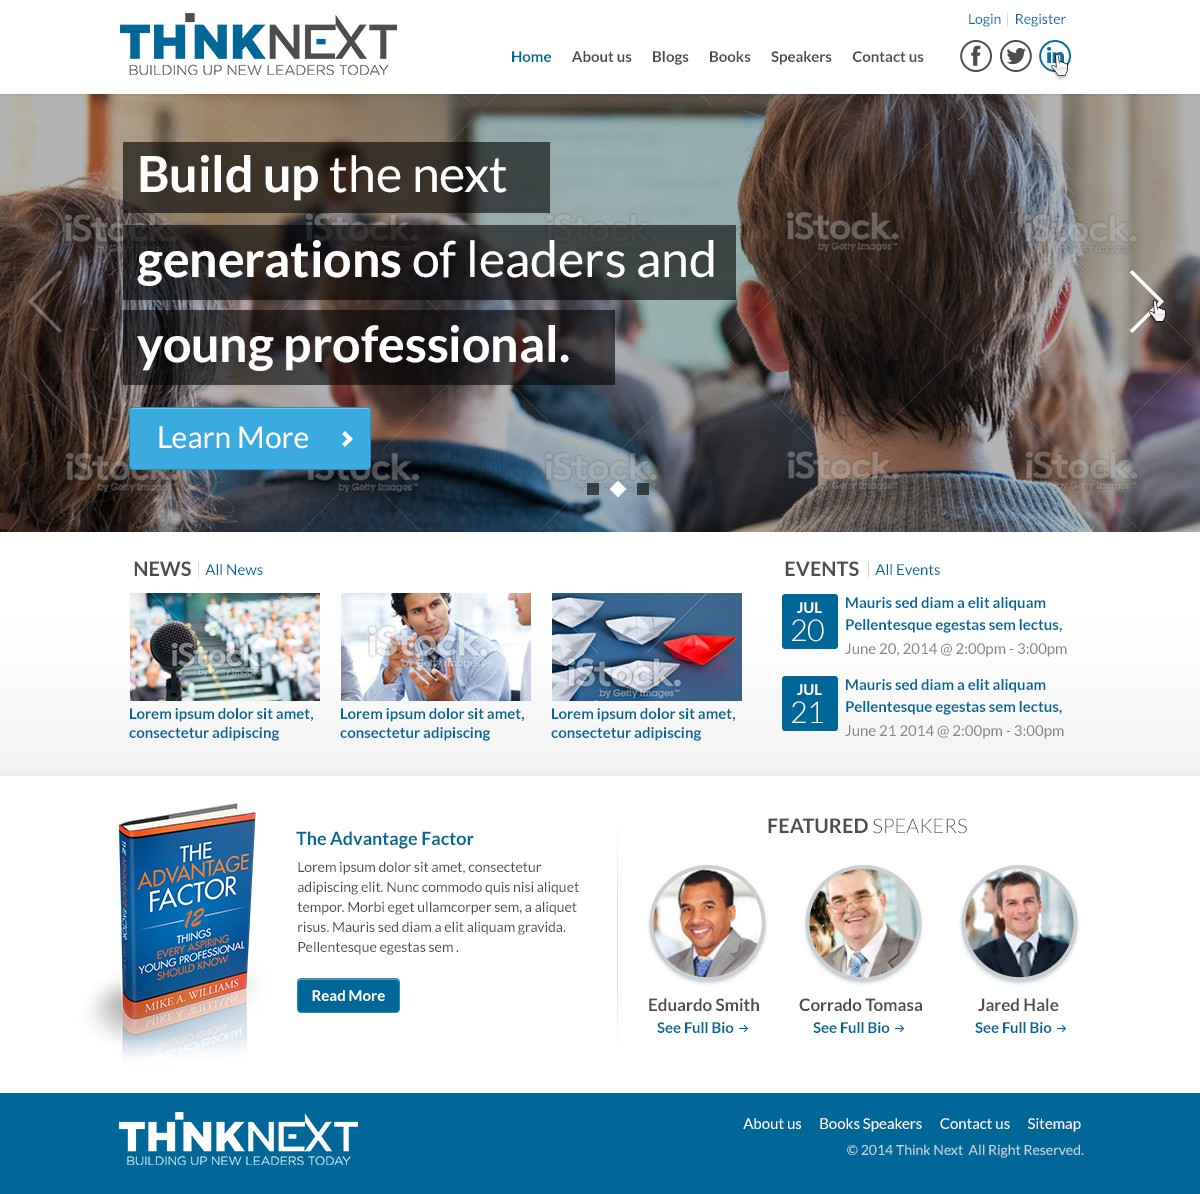 Thinknext Website for book and Speaker Promotion and Display